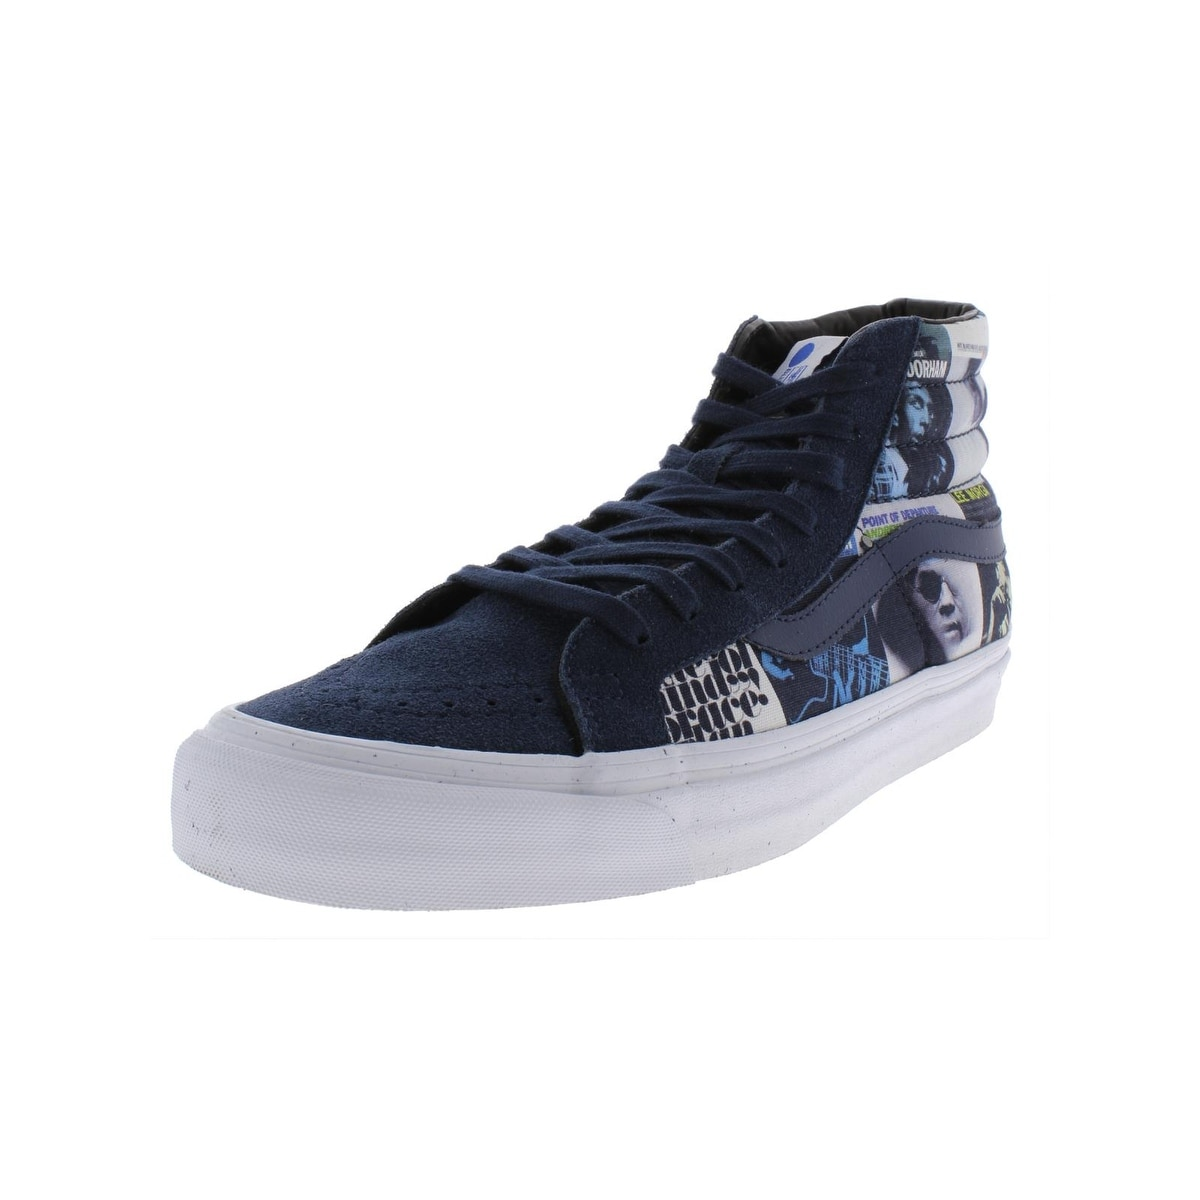 41f259fa1a Vans Men s Shoes